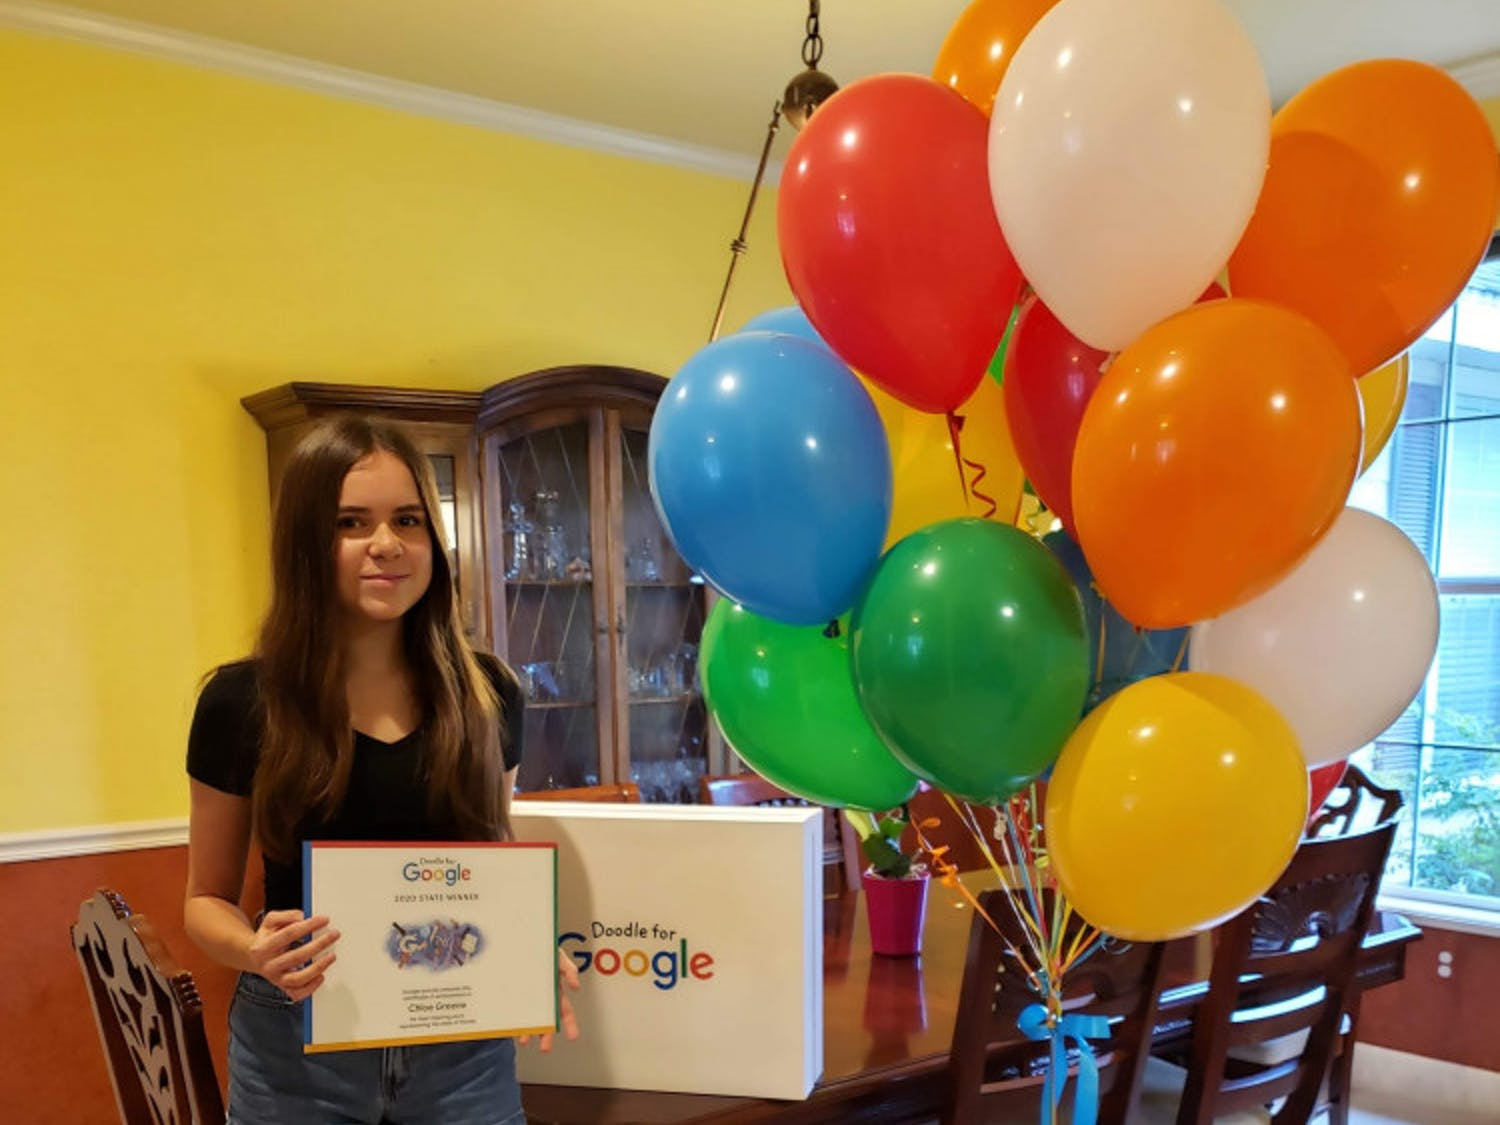 Fifteen-year-old Chloe Greene, Florida's Doodle for Google finalist, was celebrated with two Google prizes and balloons Aug. 15.